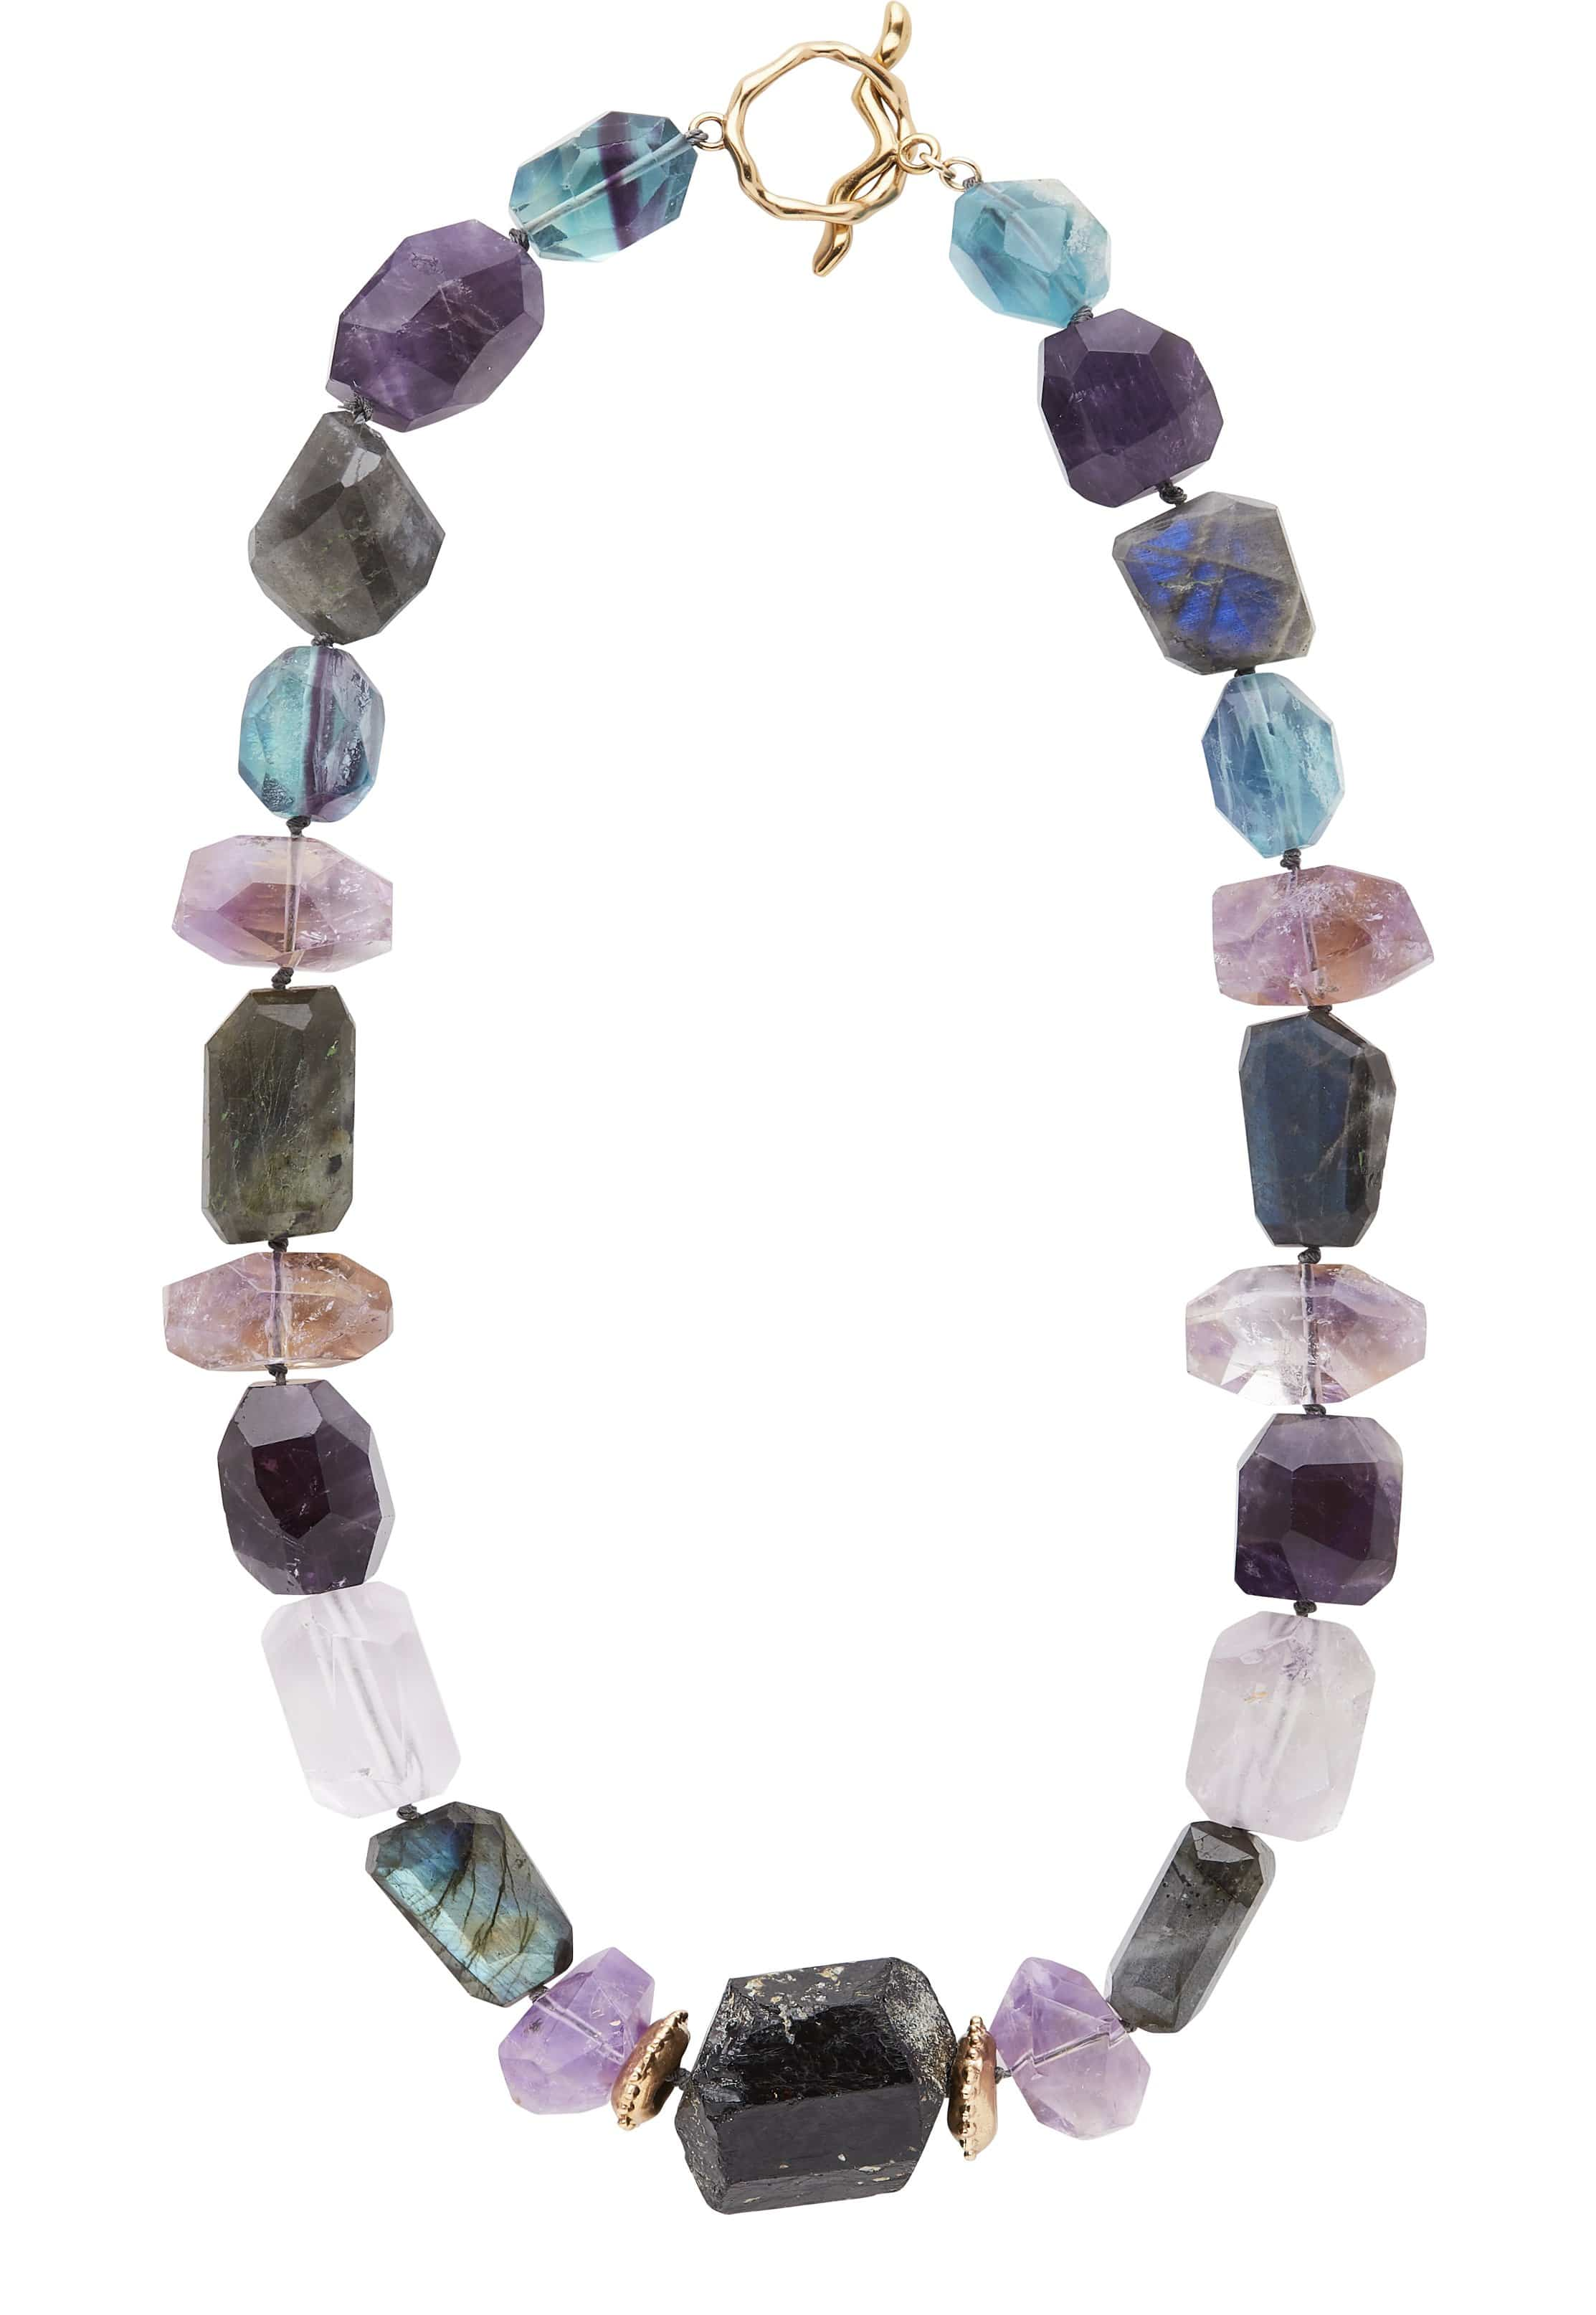 Julie Cohn Design. Galapagos Necklace with black tourmaline, amethyst and labradorite. Handcrafted in the USA. Bronze artisan jewelry.